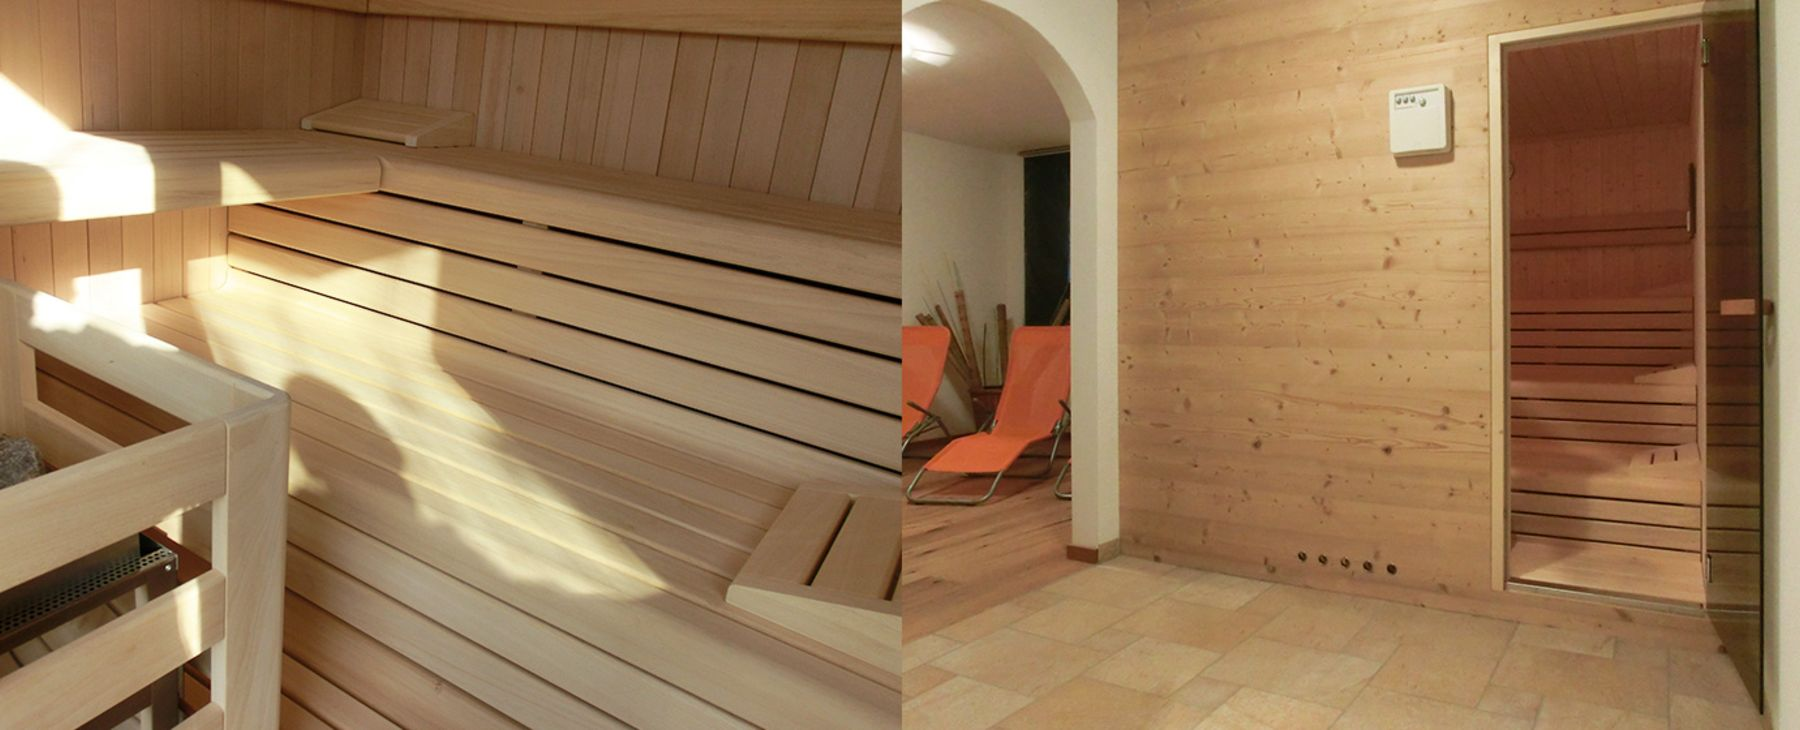 sauna schaller finnische sauna aus s dtirol. Black Bedroom Furniture Sets. Home Design Ideas